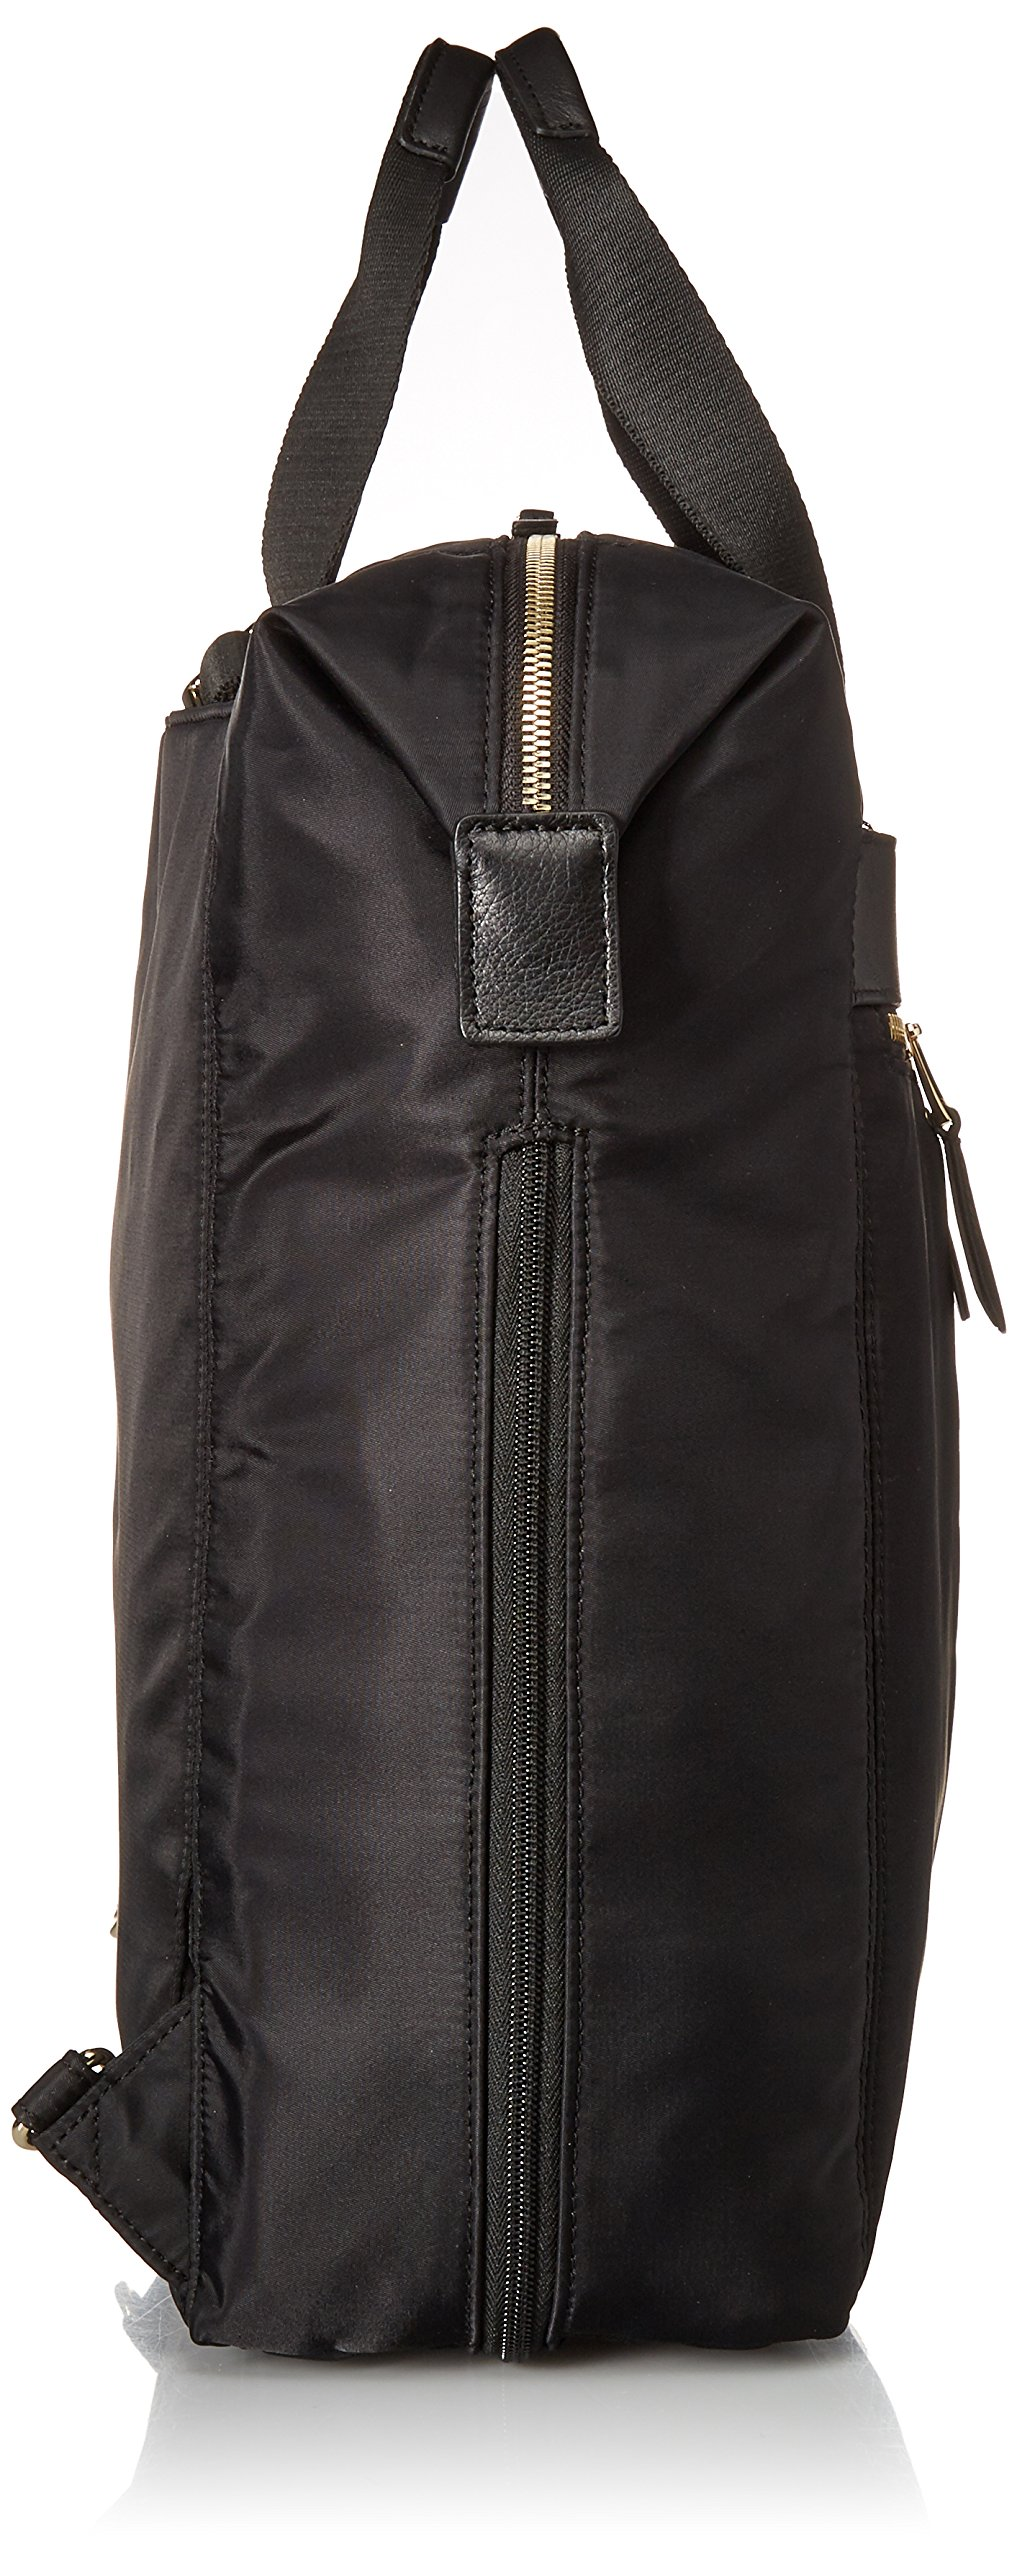 Knomo Luggage Women's Chiltern Business Backpack, Black, One Size by Knomo (Image #3)